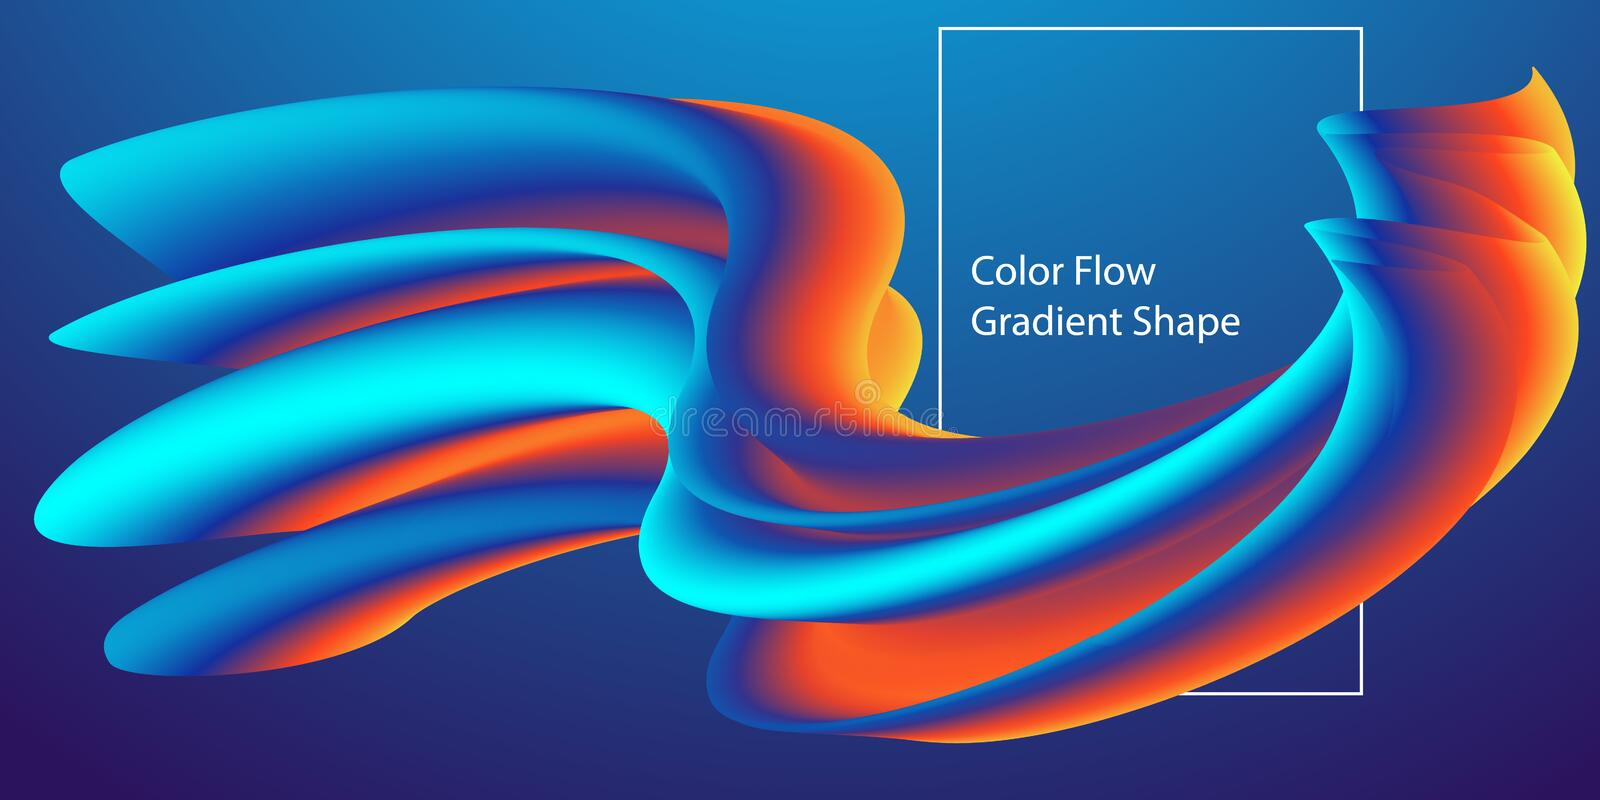 Abstract Modern Color flow shape template, Liquid colorful gradient background. Vector Illustration.  royalty free illustration